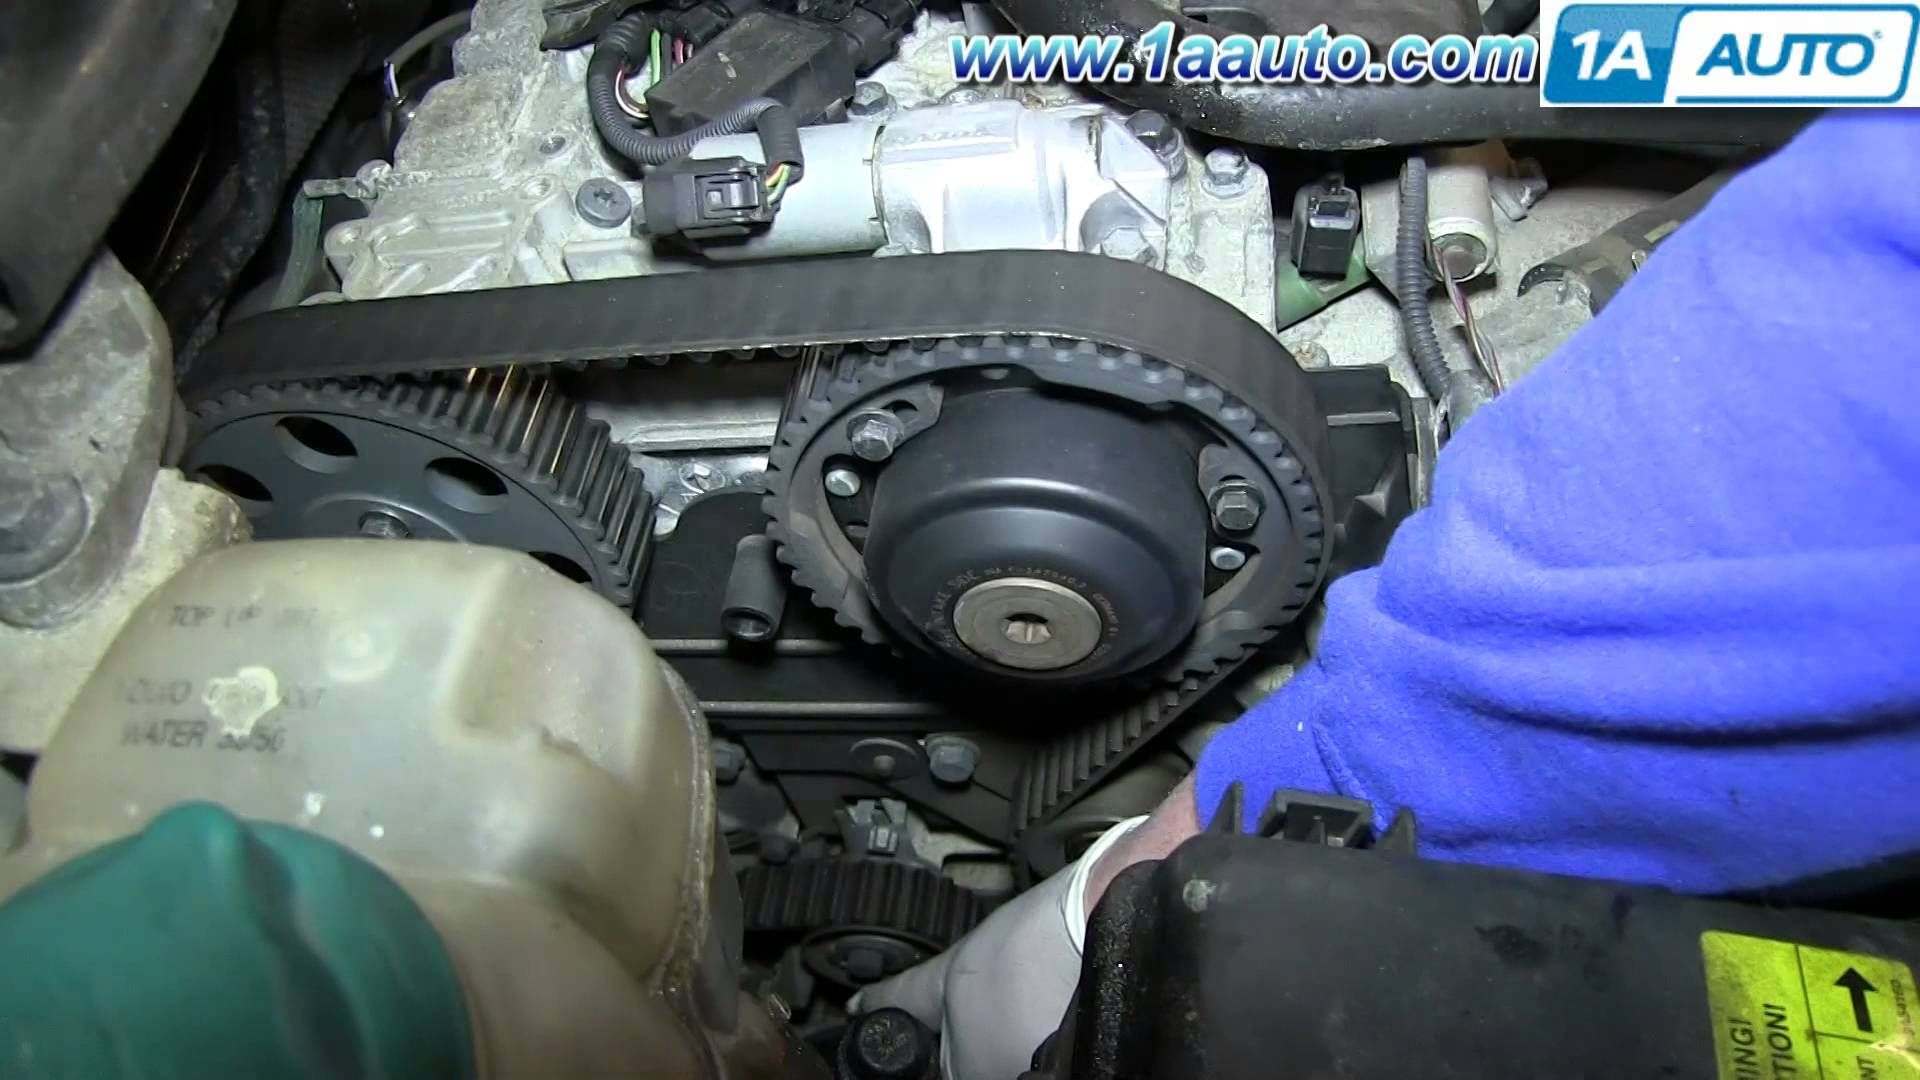 [DIAGRAM_34OR]  How To install Replace Engine Timing Belt Volvo L5 2.4L | Auto repair,  Repair, Volvo v70 | Volvo Timing Belt |  | Pinterest